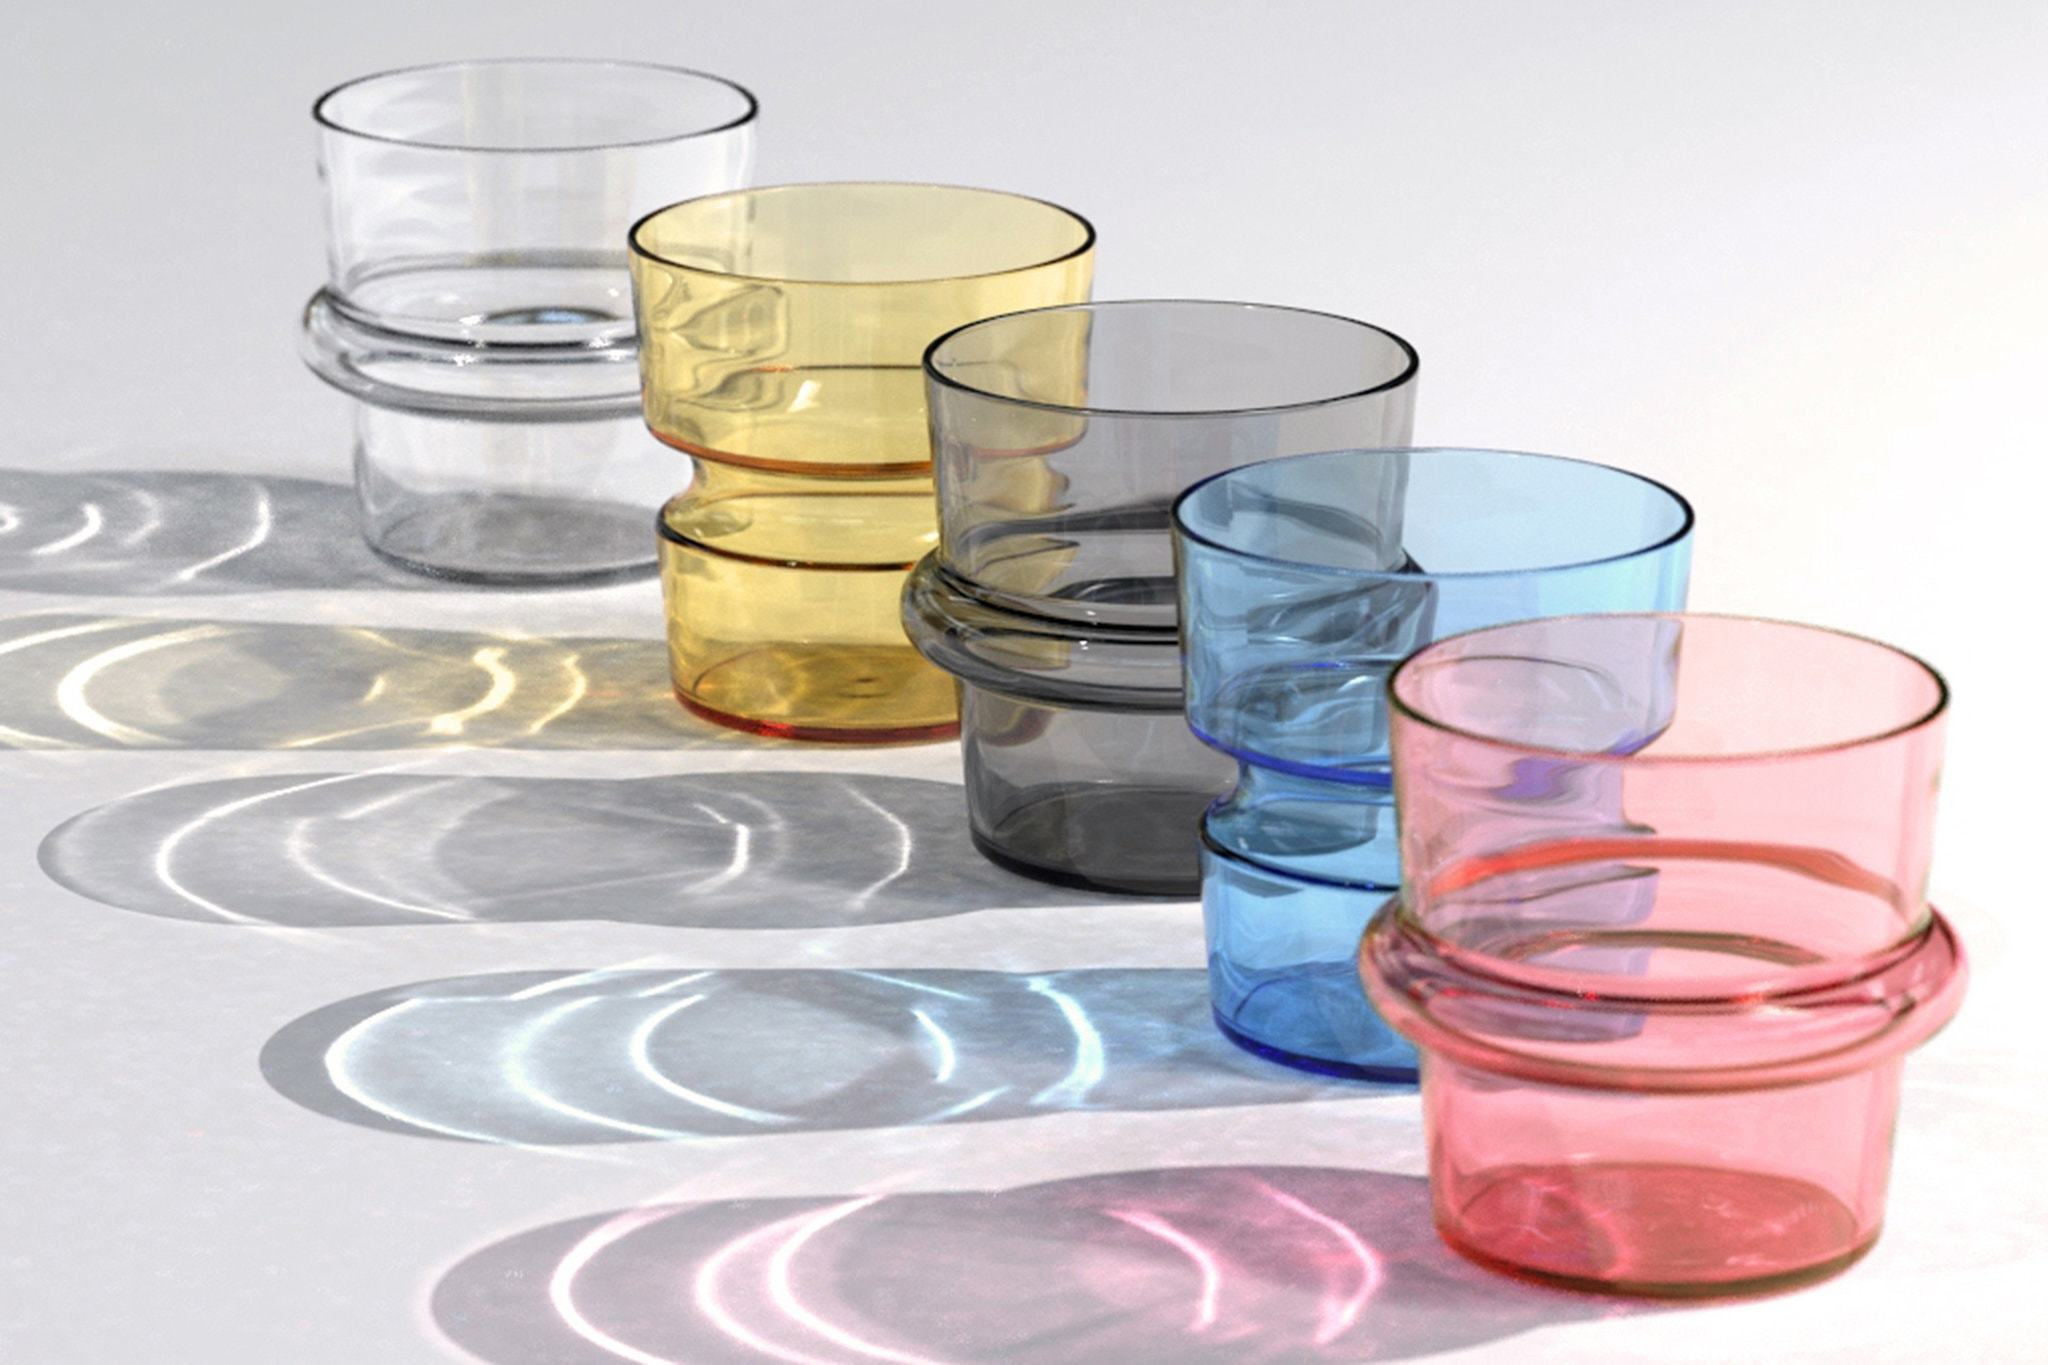 Cupples Glassware. Image Credit Adam Holtzinger/Keep